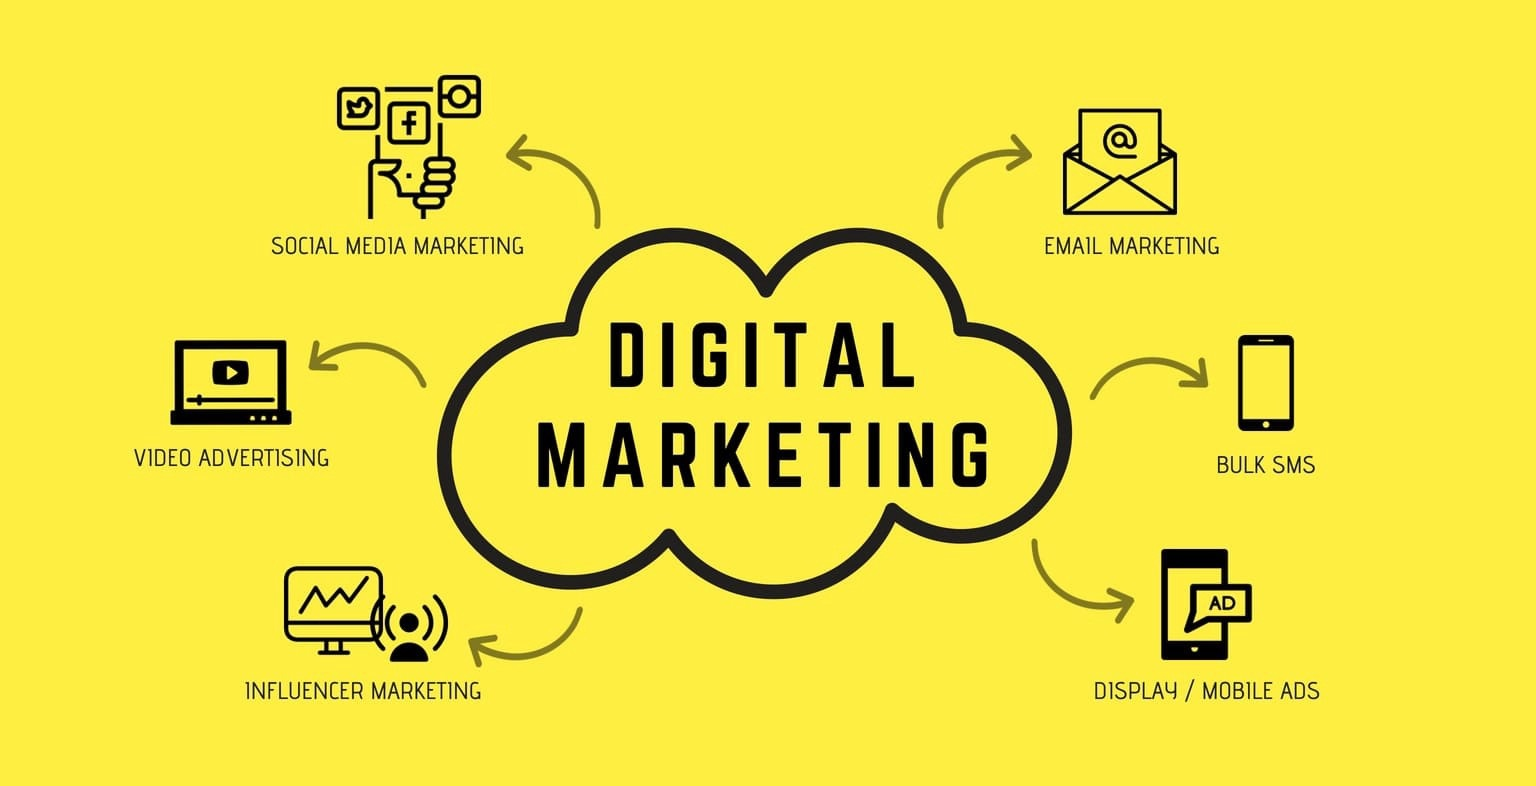 Social Marketing Tools and how they can help businesses with their Digital Marketing efforts